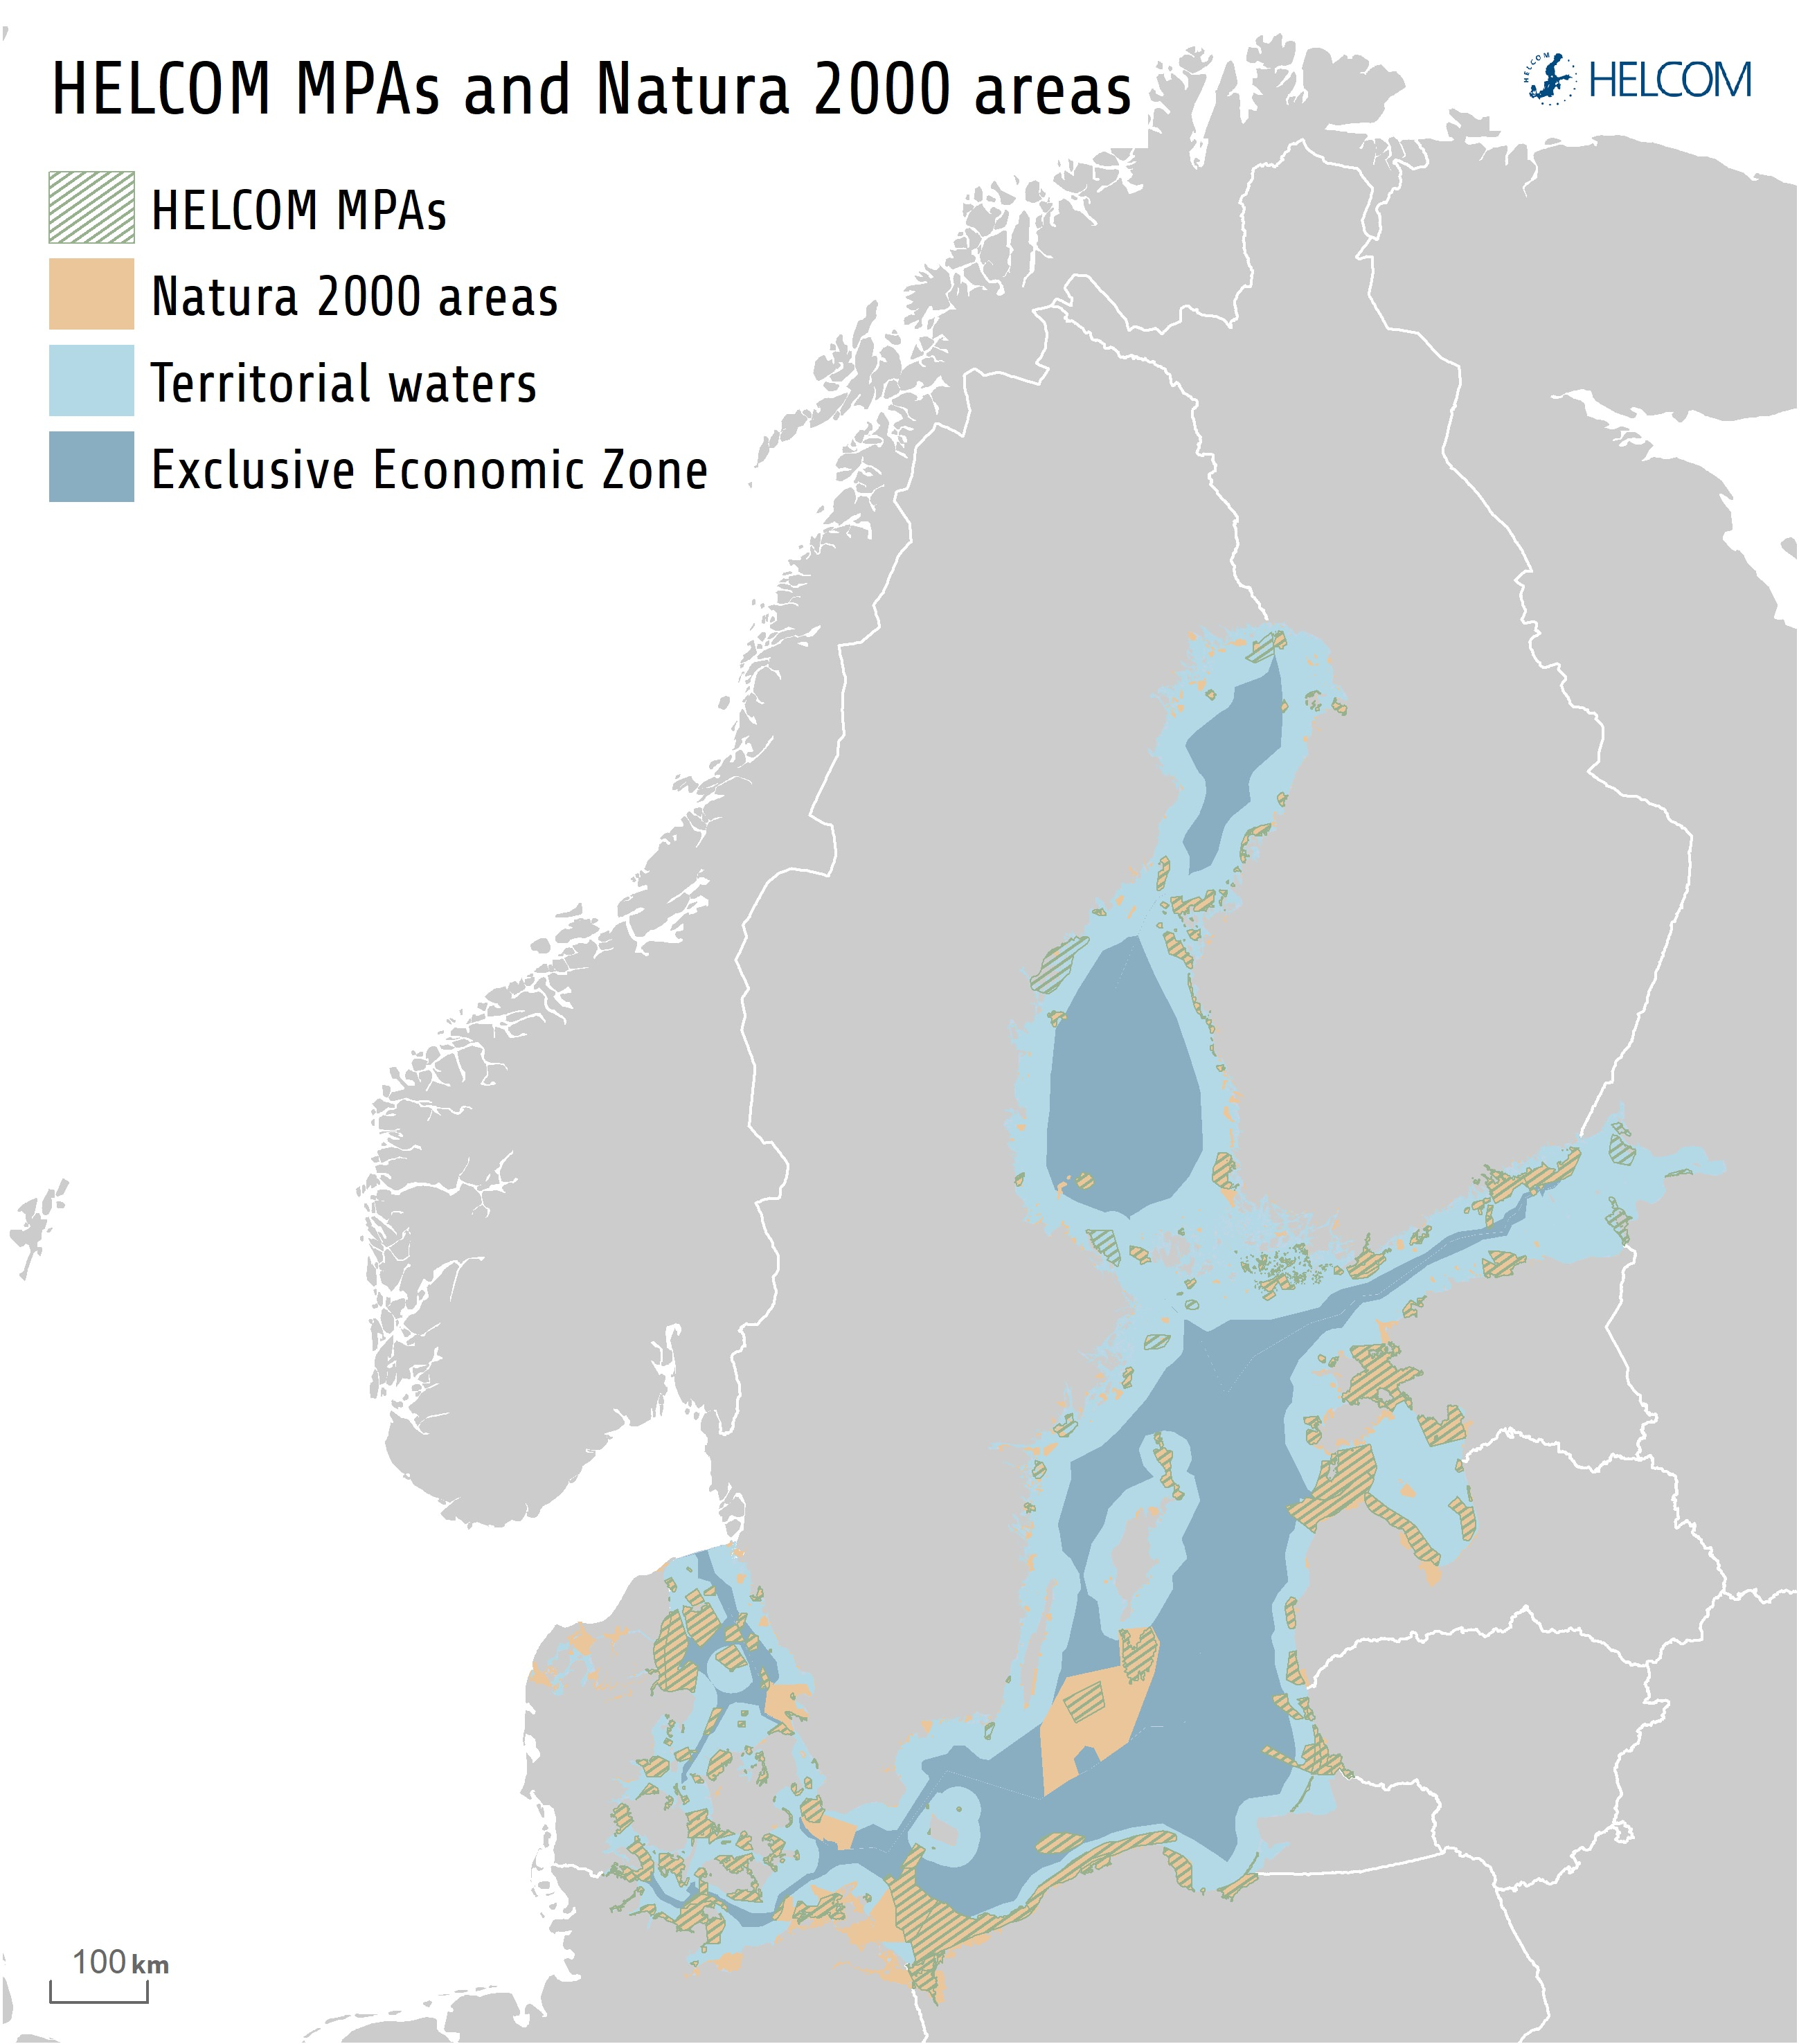 Figure 7.4. Marine Protected Areas In The Baltic Sea. The Baltic Sea Reached The Target Of Conserving At Least 10 % Of Coastal And Marine Areas, Set By The United Nations Convention On Biological Diversity. Today The Area Protected By These Marine Protected Areas (MPAs) Has Reached 12 %.